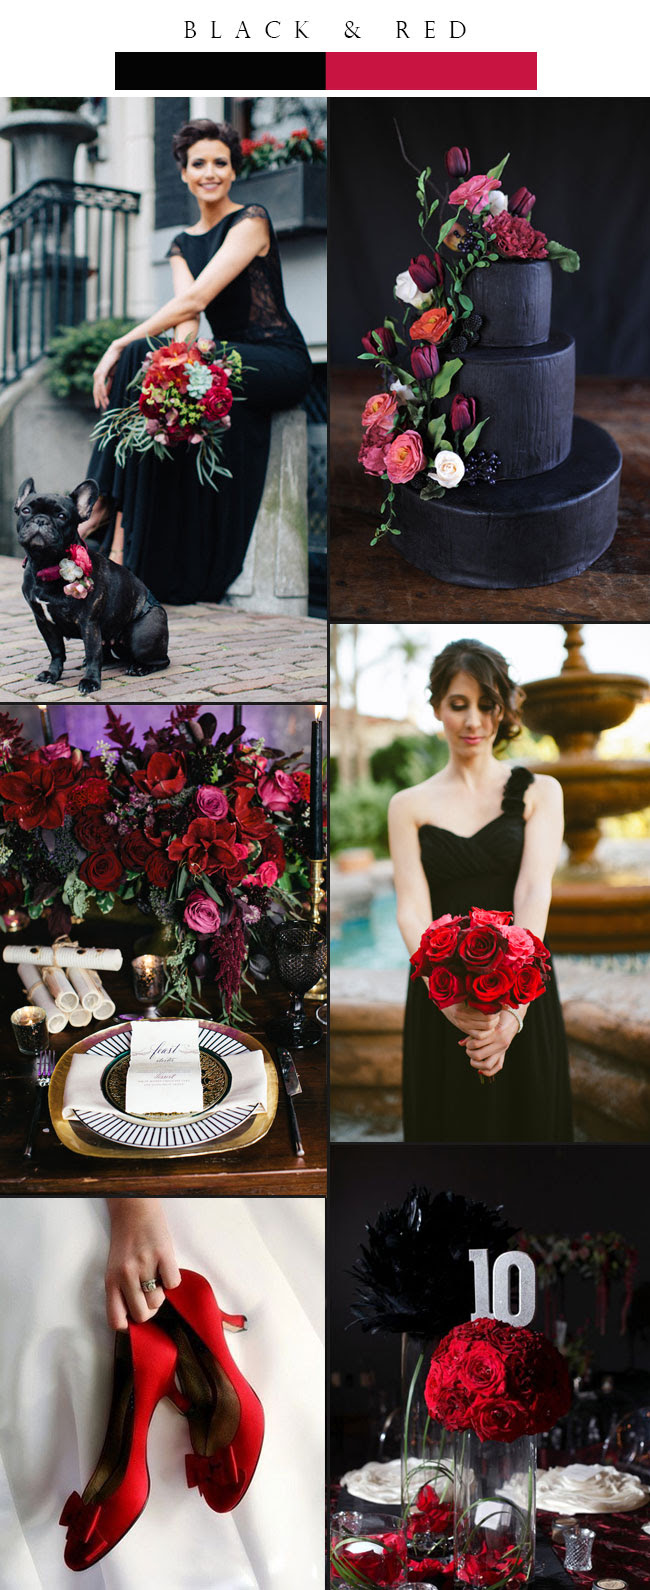 Top 3 Glamorous Black Winter Wedding Color Palette Ideas Stylish